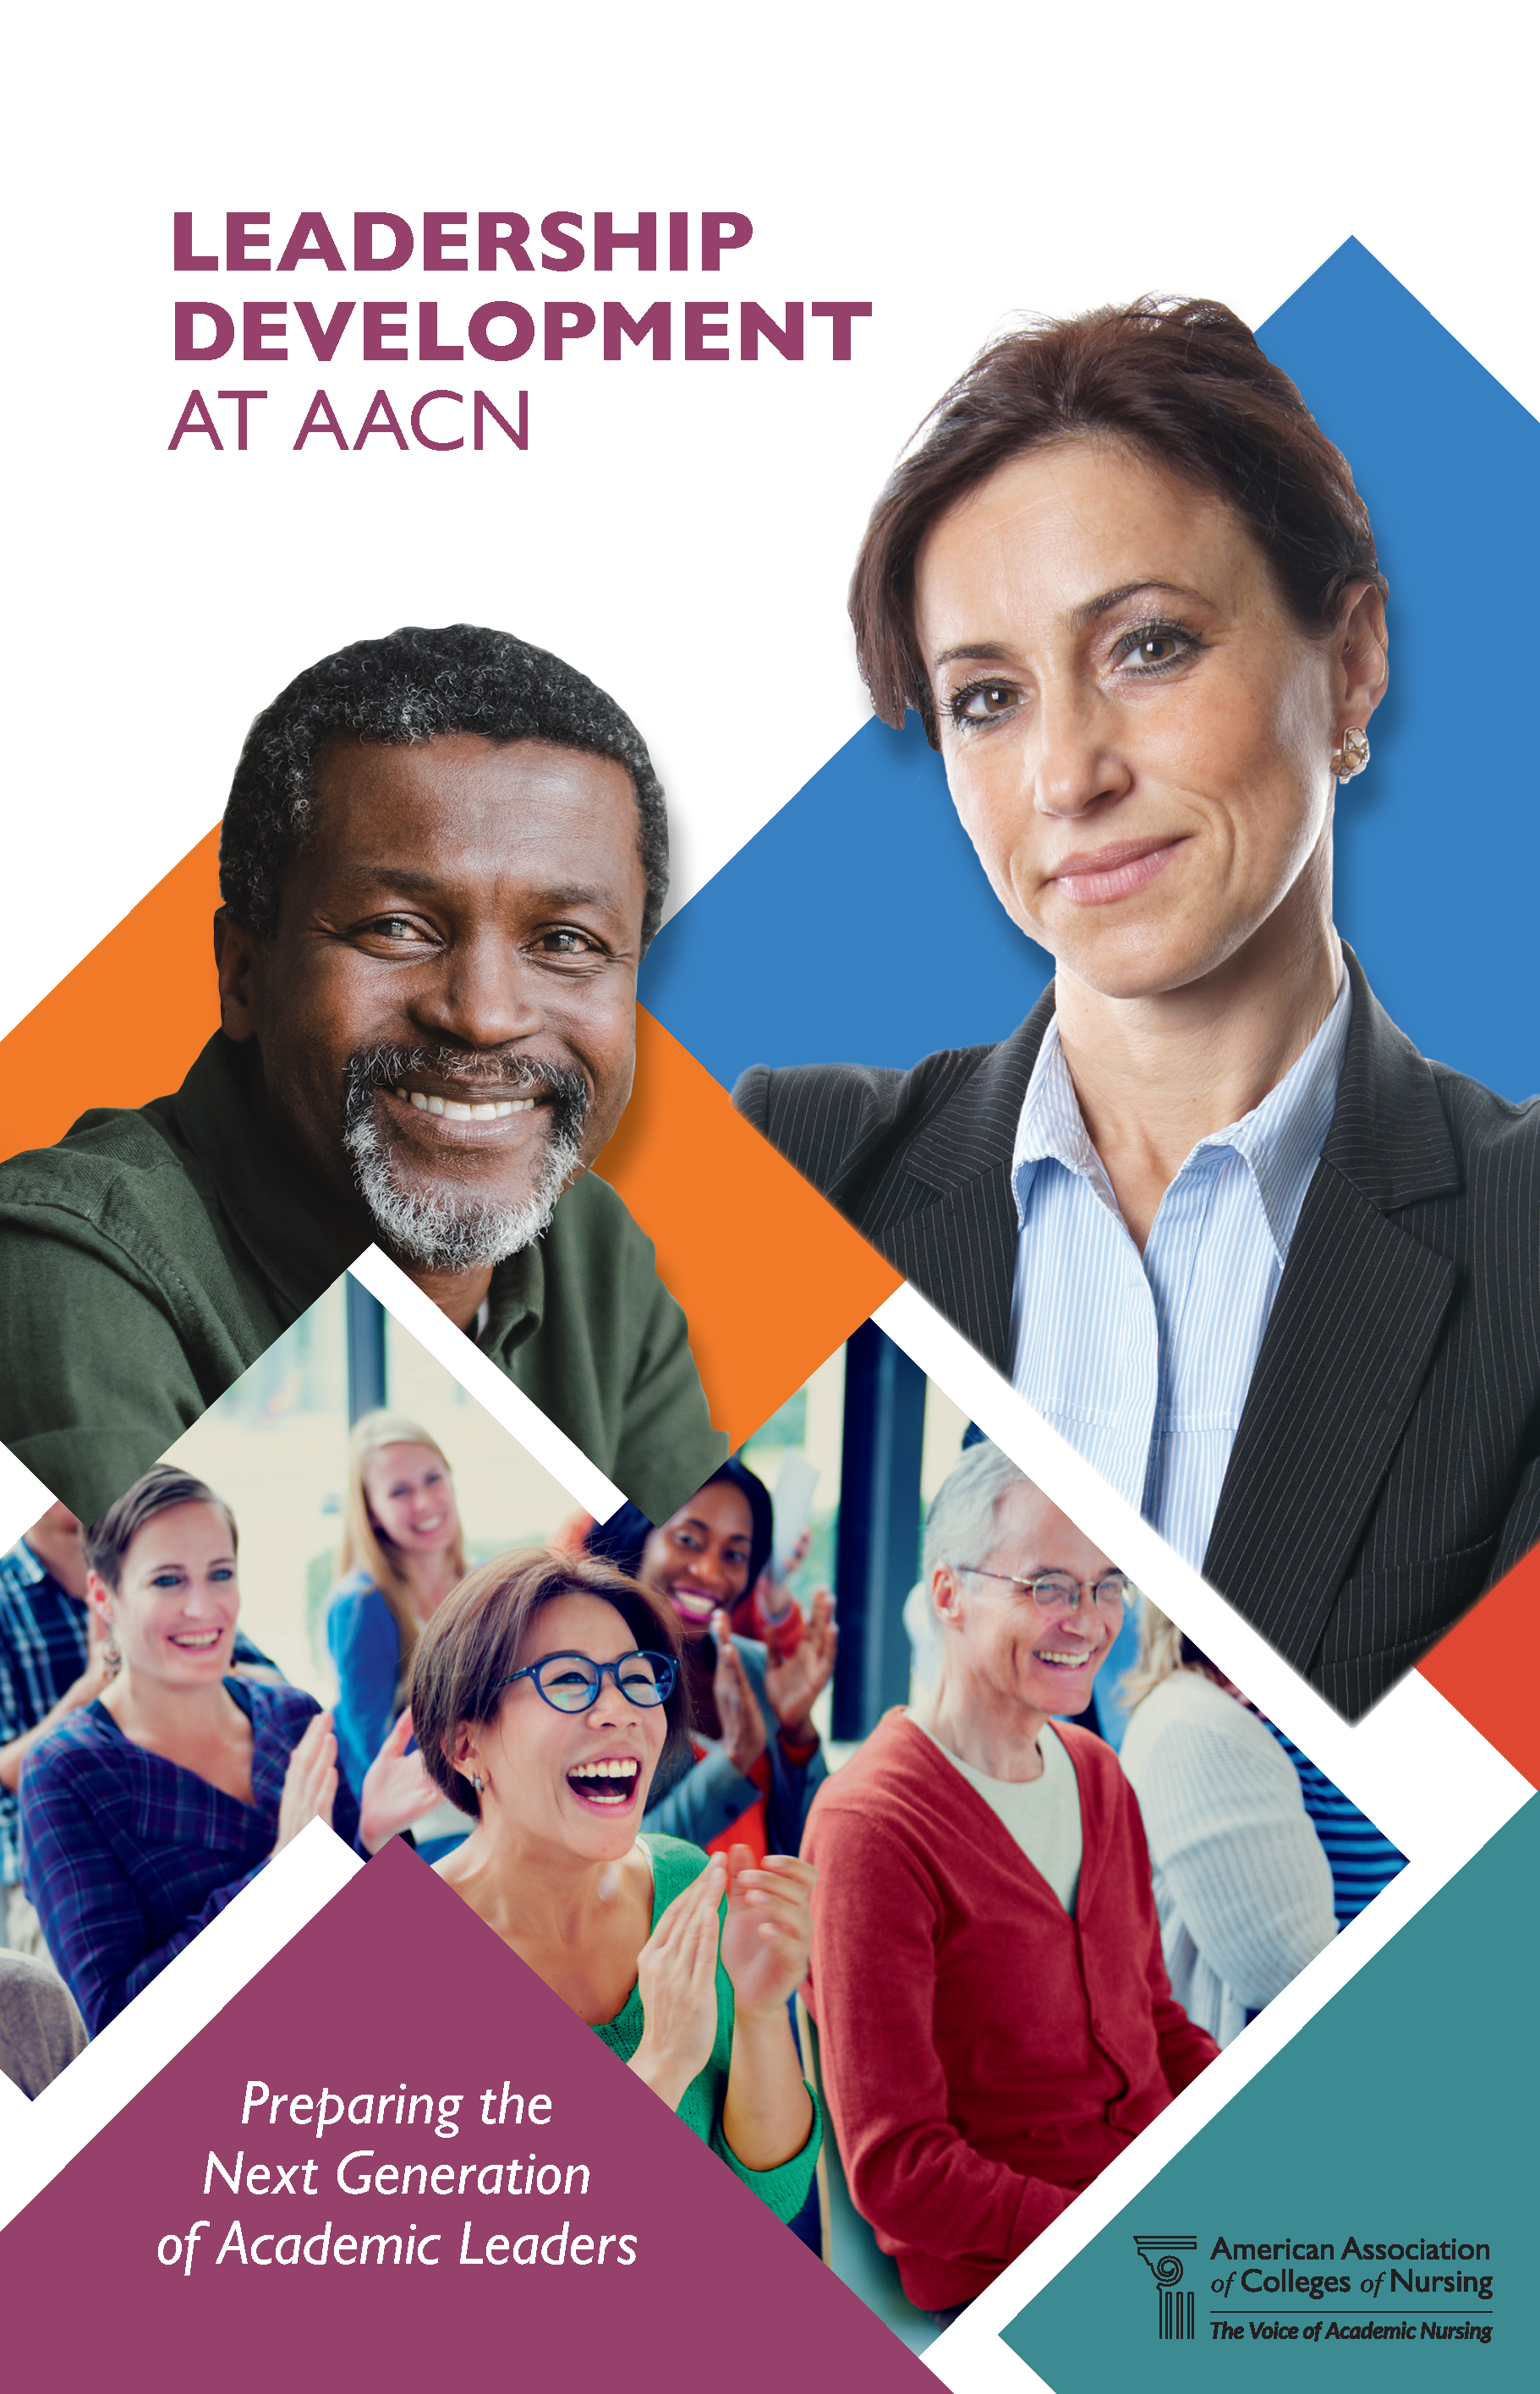 Image of Brochure Cover for Leadership Development At AACN - Preparing the Next Generation of Academic Leaders